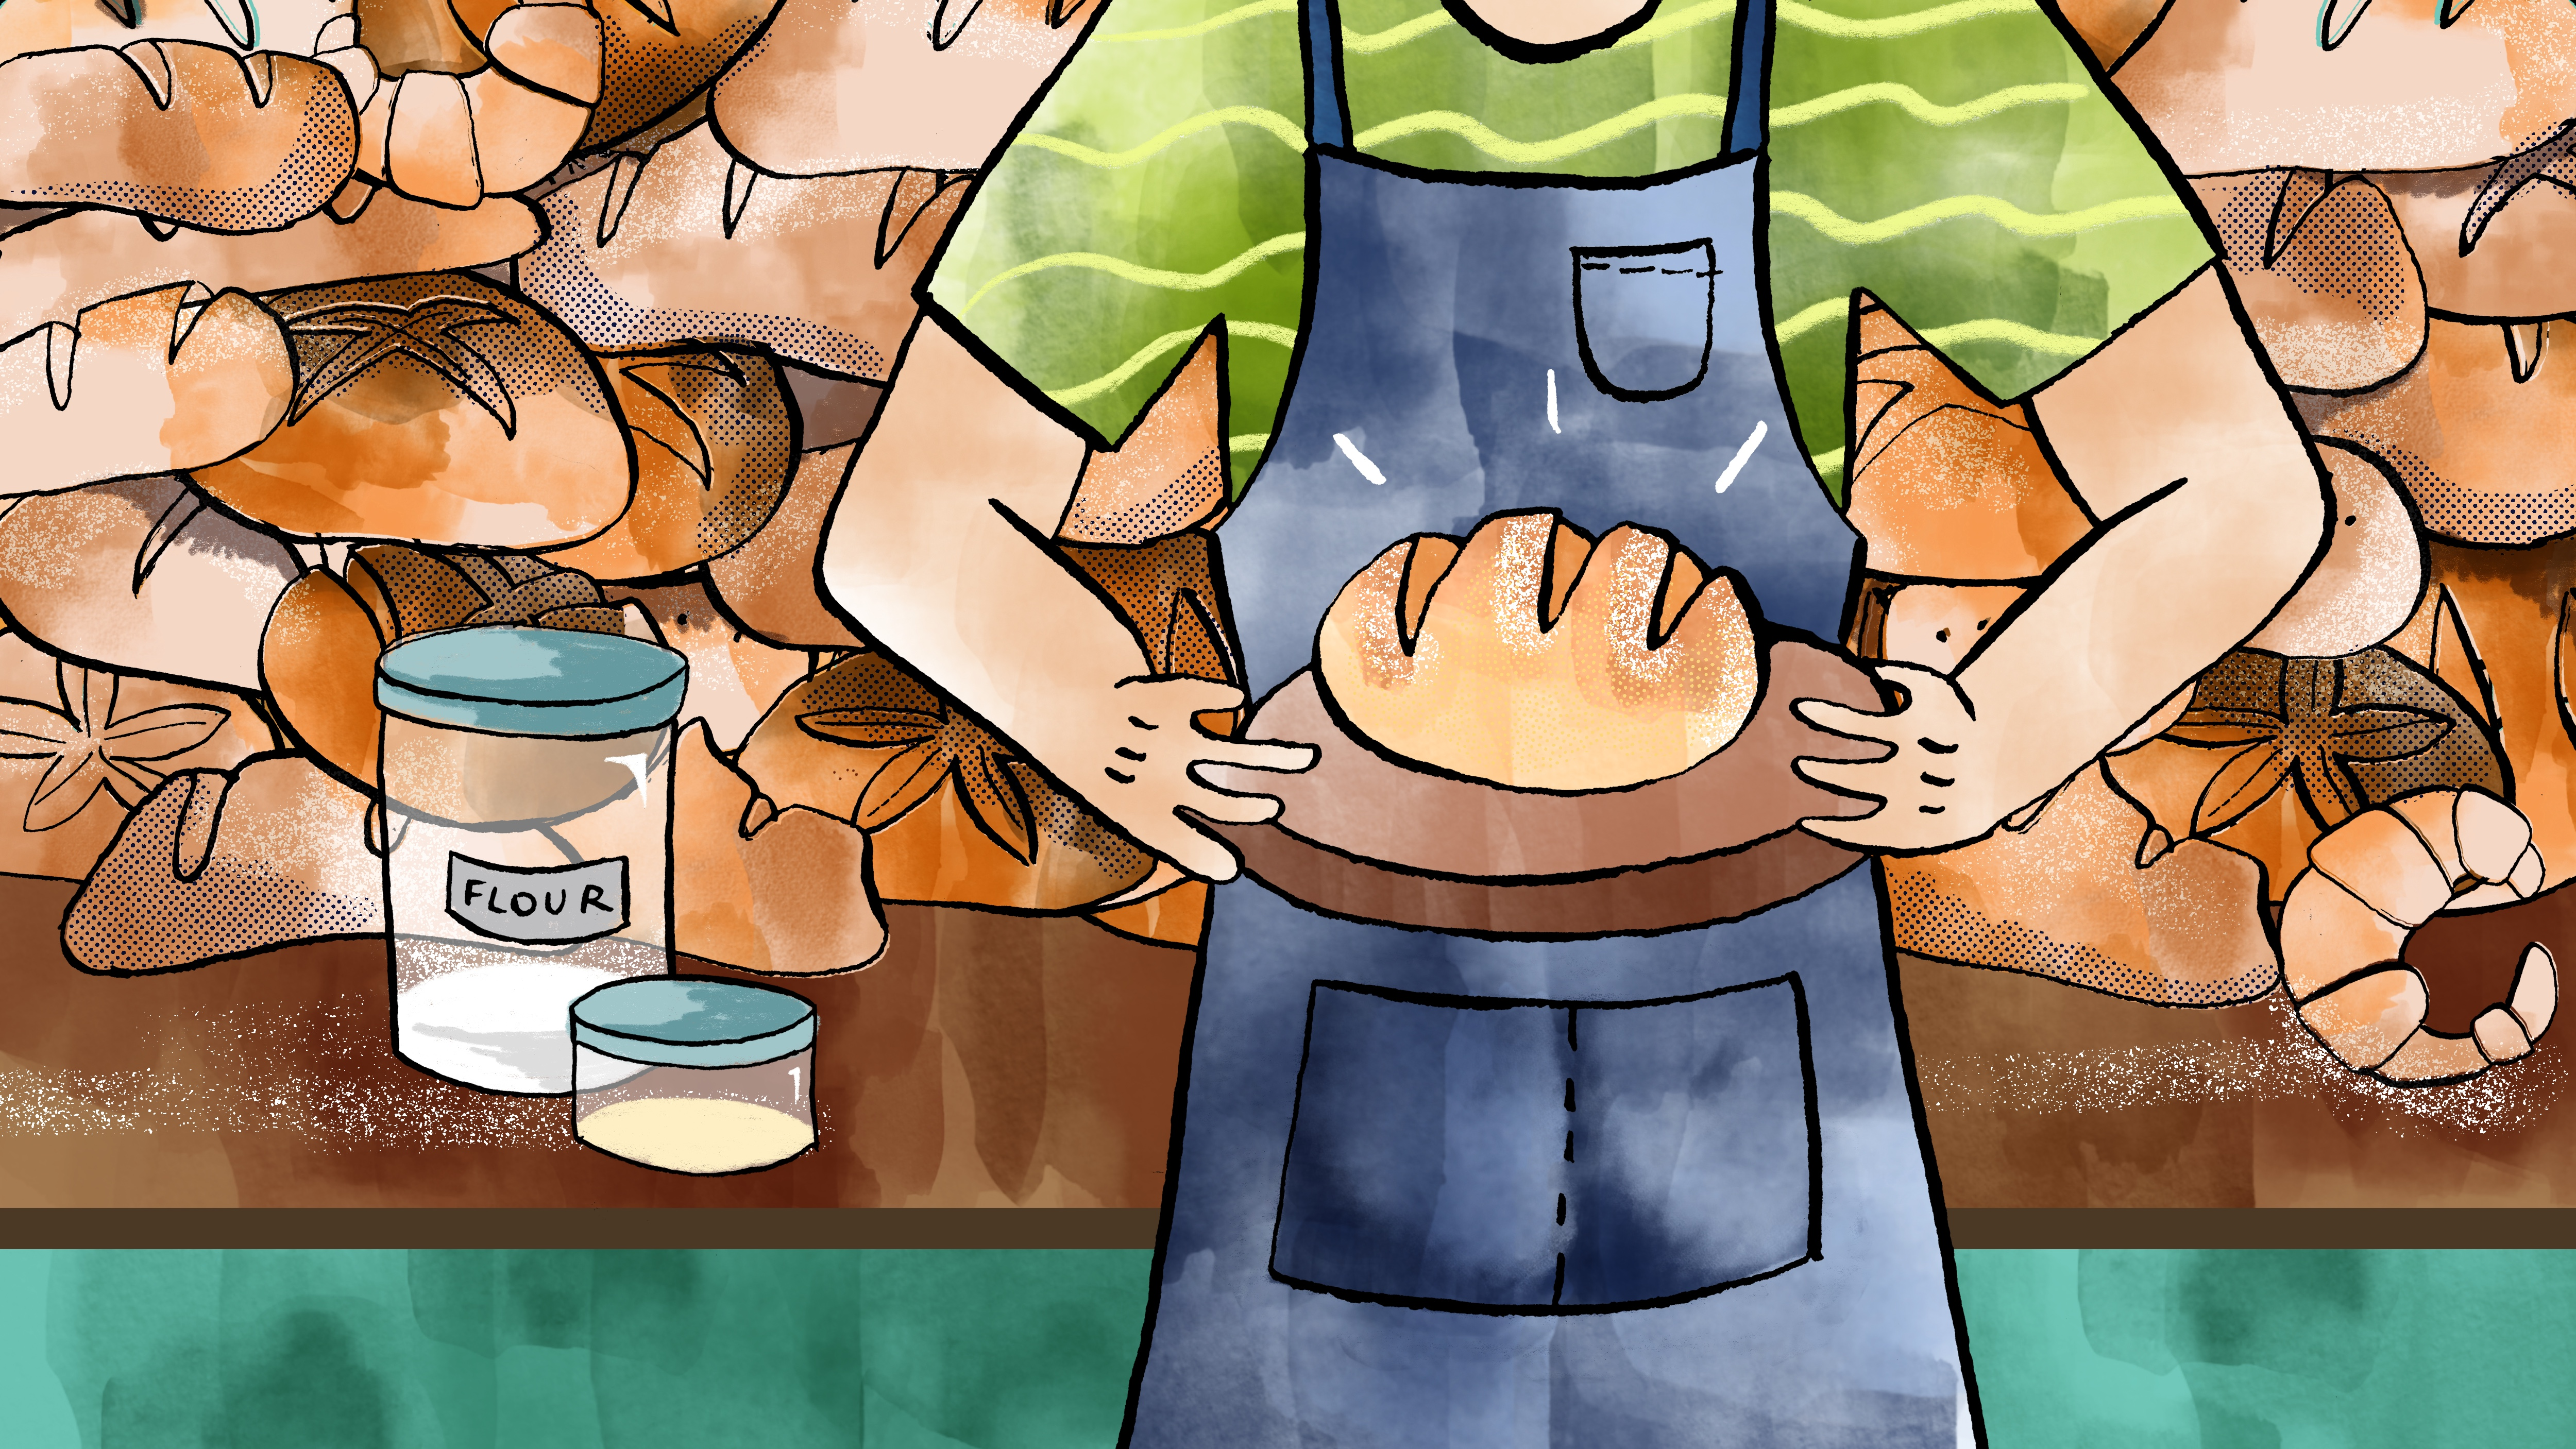 An illustration of a man holding a loaf of bread in front of so many more loaves of bread.